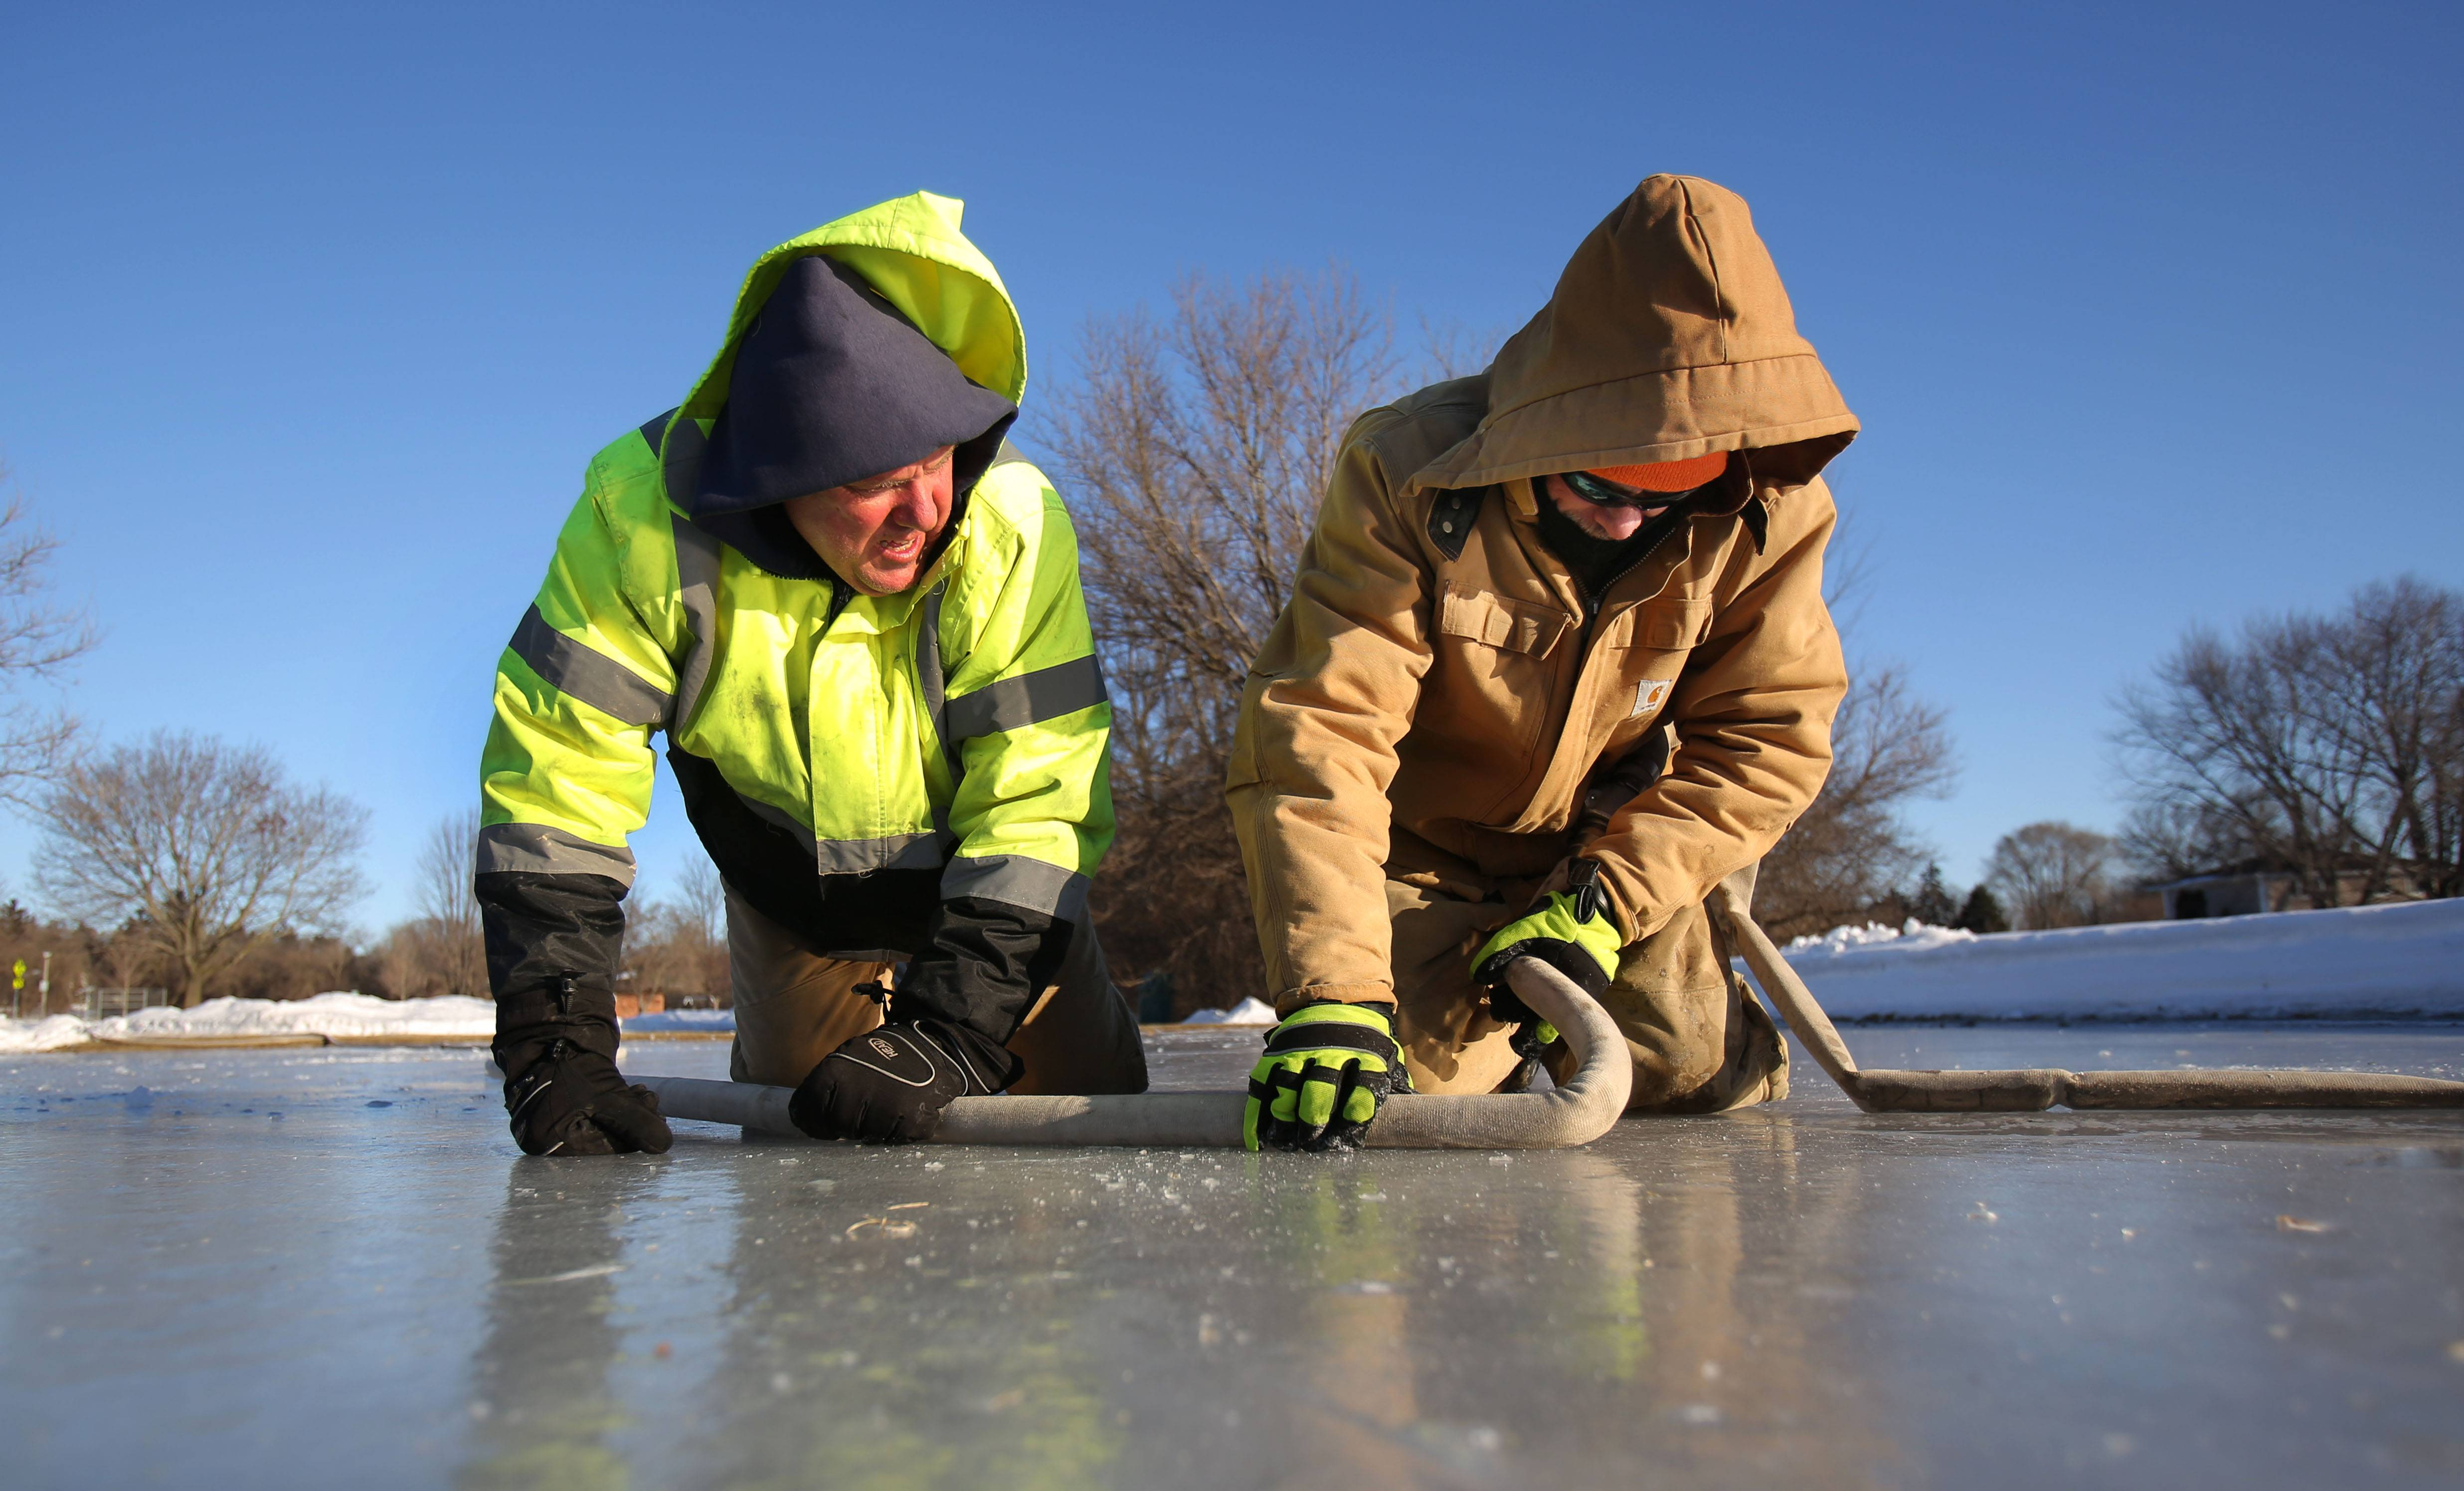 Libertyville Public Works employees Jeff Panella, left, and Victor Bobadilla, try to soften a frozen section of hose as they work on freezing the ice rink at Nicholas-Dowden Park, as temperatures dipped into the single digits Thursday in Libertyville.